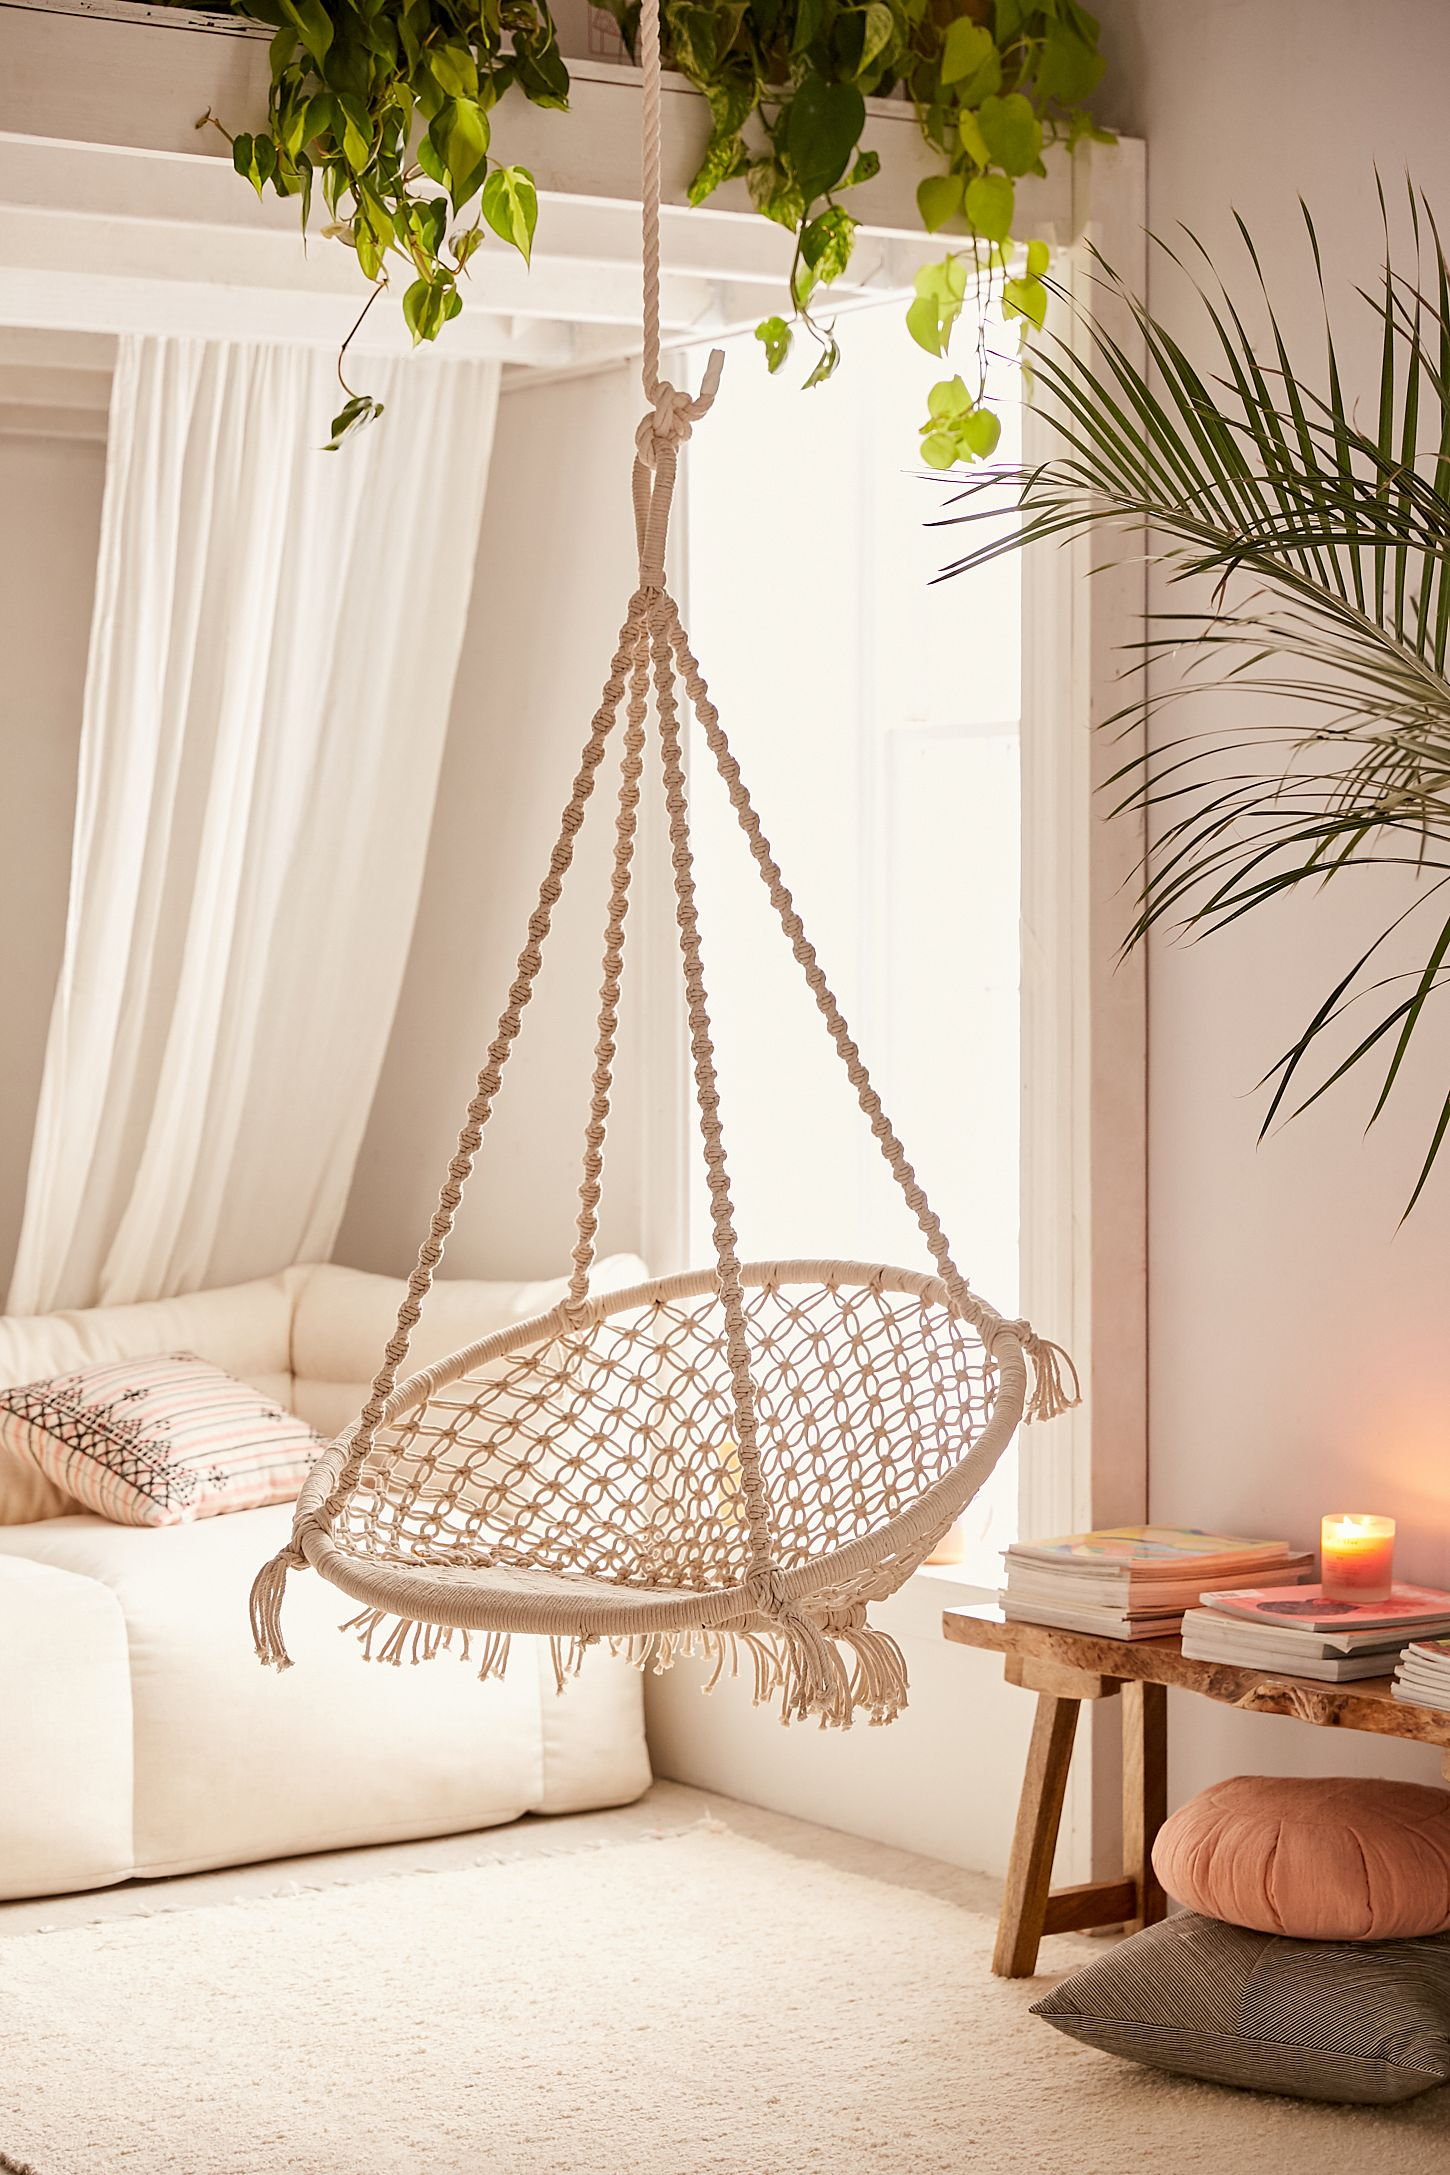 Meadow Macrame Hanging Chair Urban Outfitters